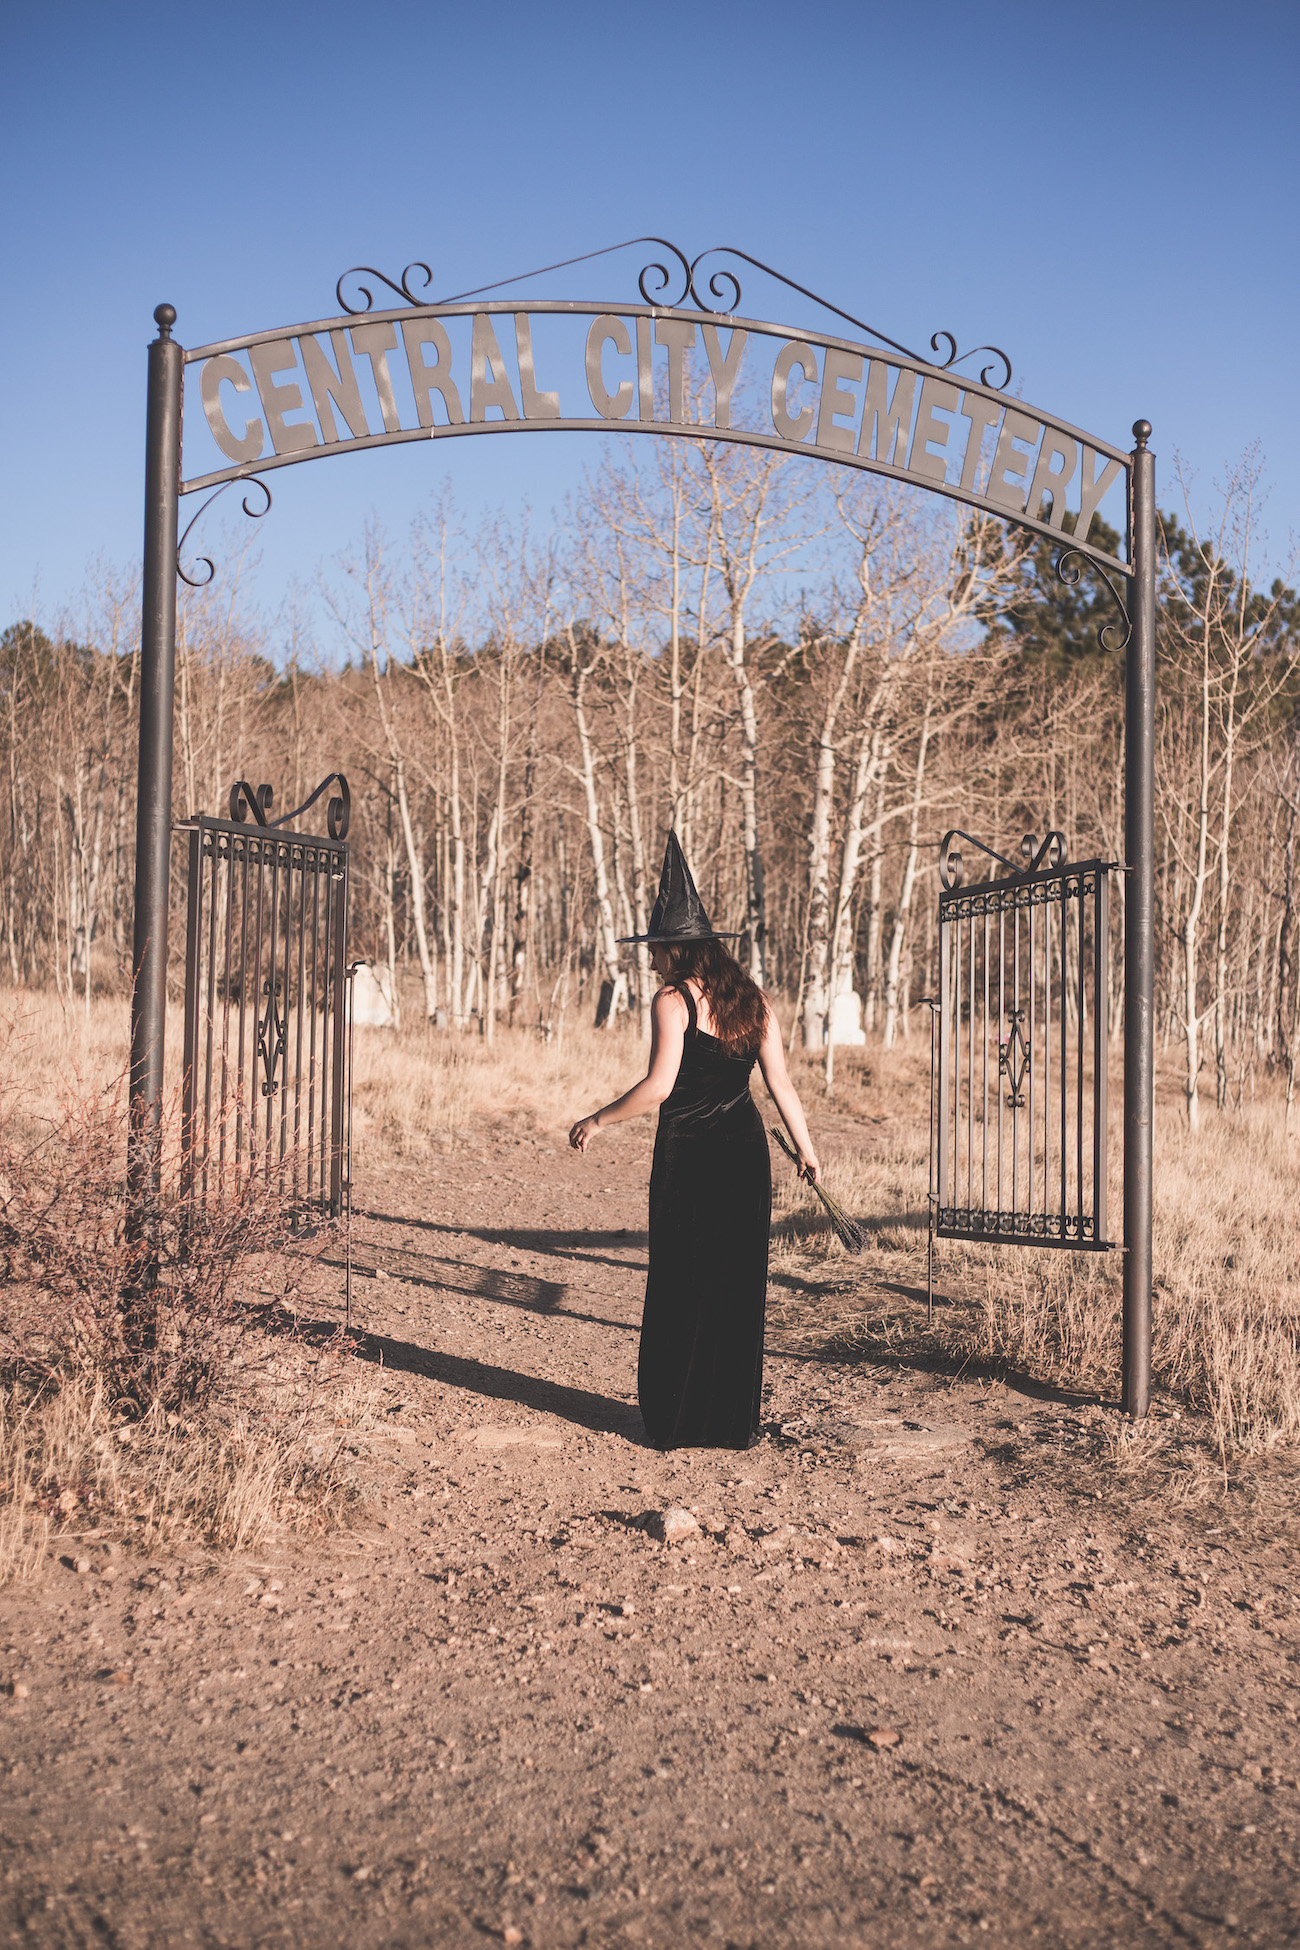 """Kelsey dressed in a long black dress with a witch's hat, walking into the Central City Cemetery in Colorado. The wrought iron gates have a sign above that says """"Central City Cemetery""""."""